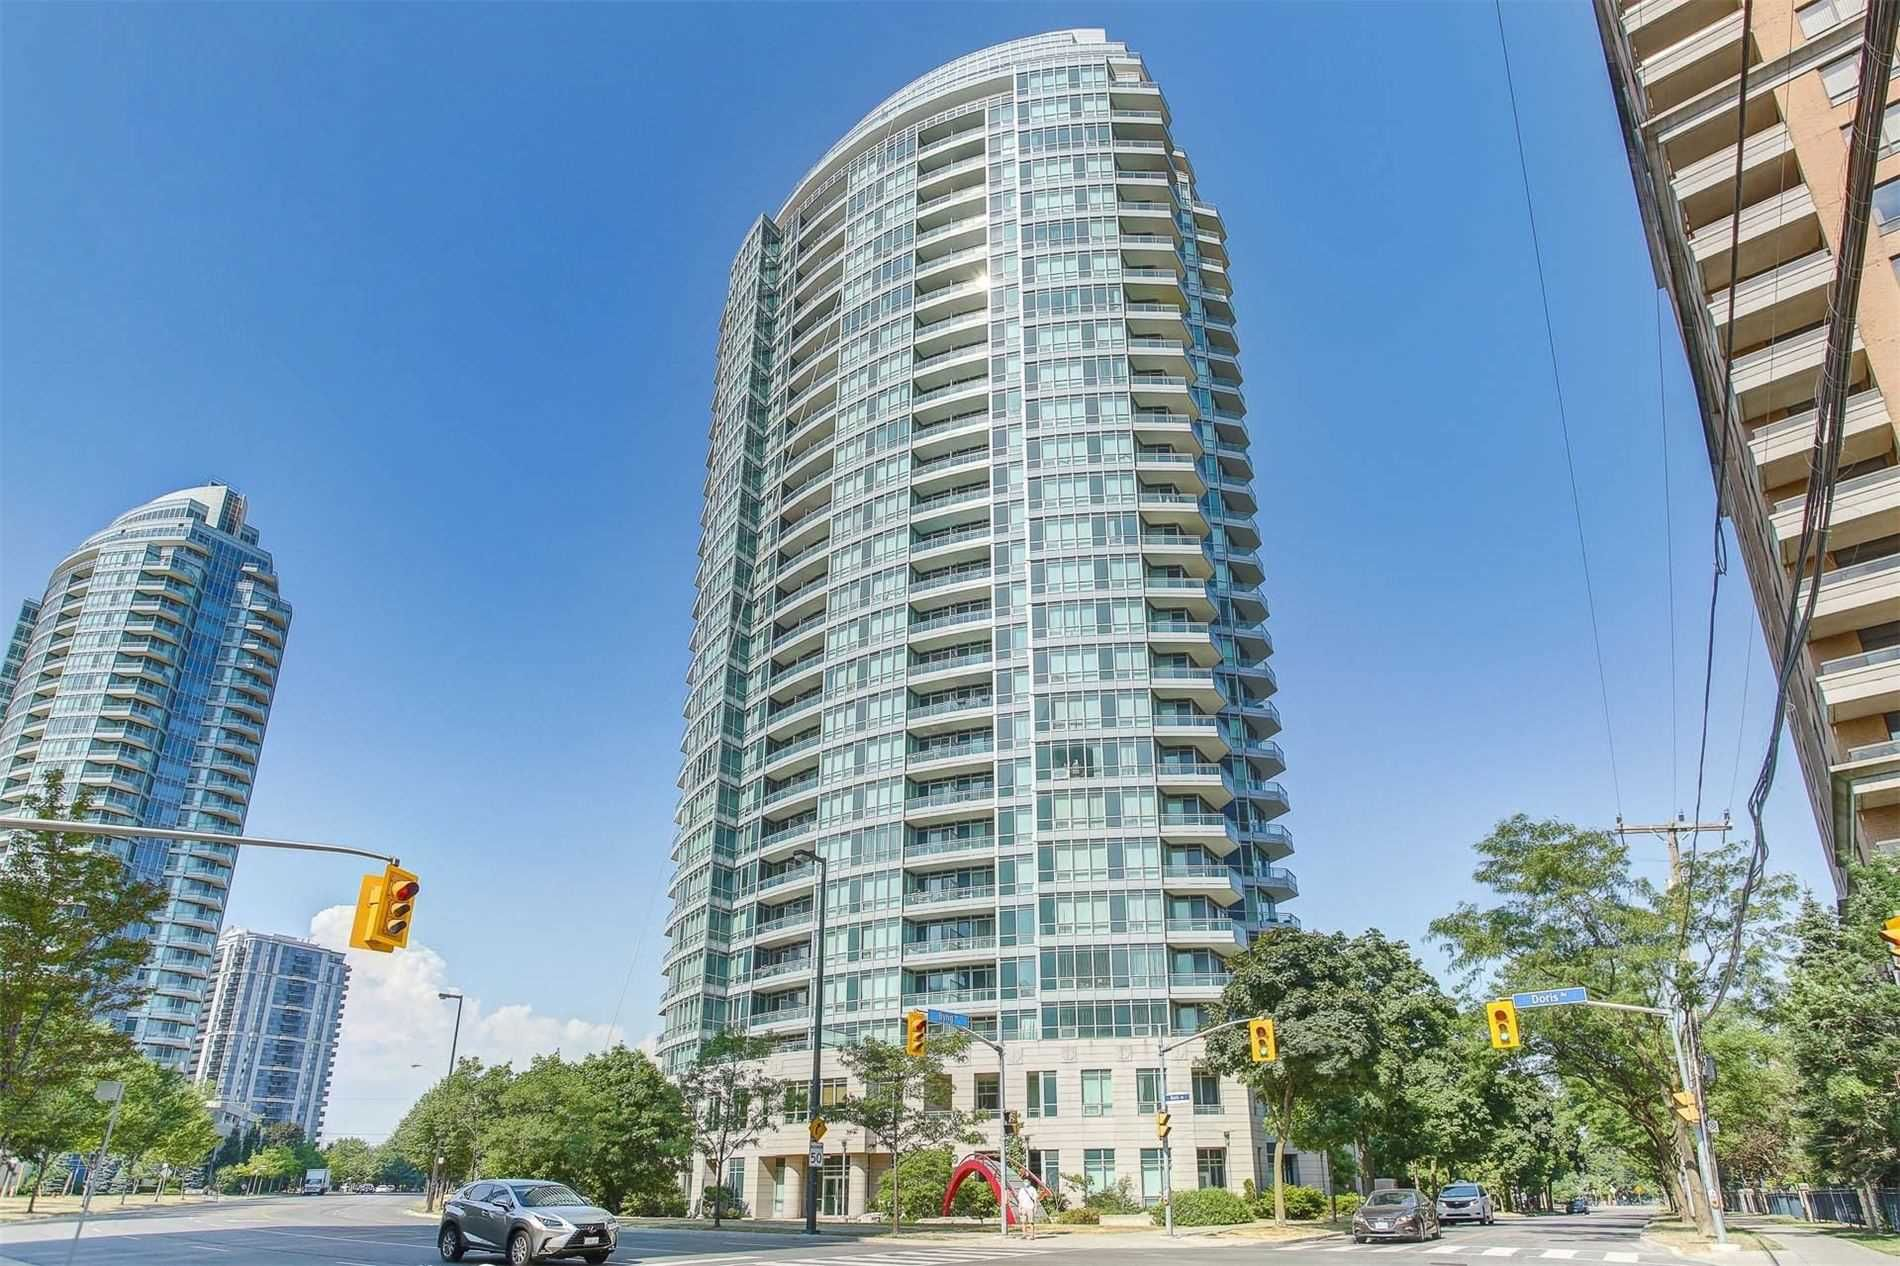 60 Byng Ave, unit 2409 for sale in Toronto - image #1